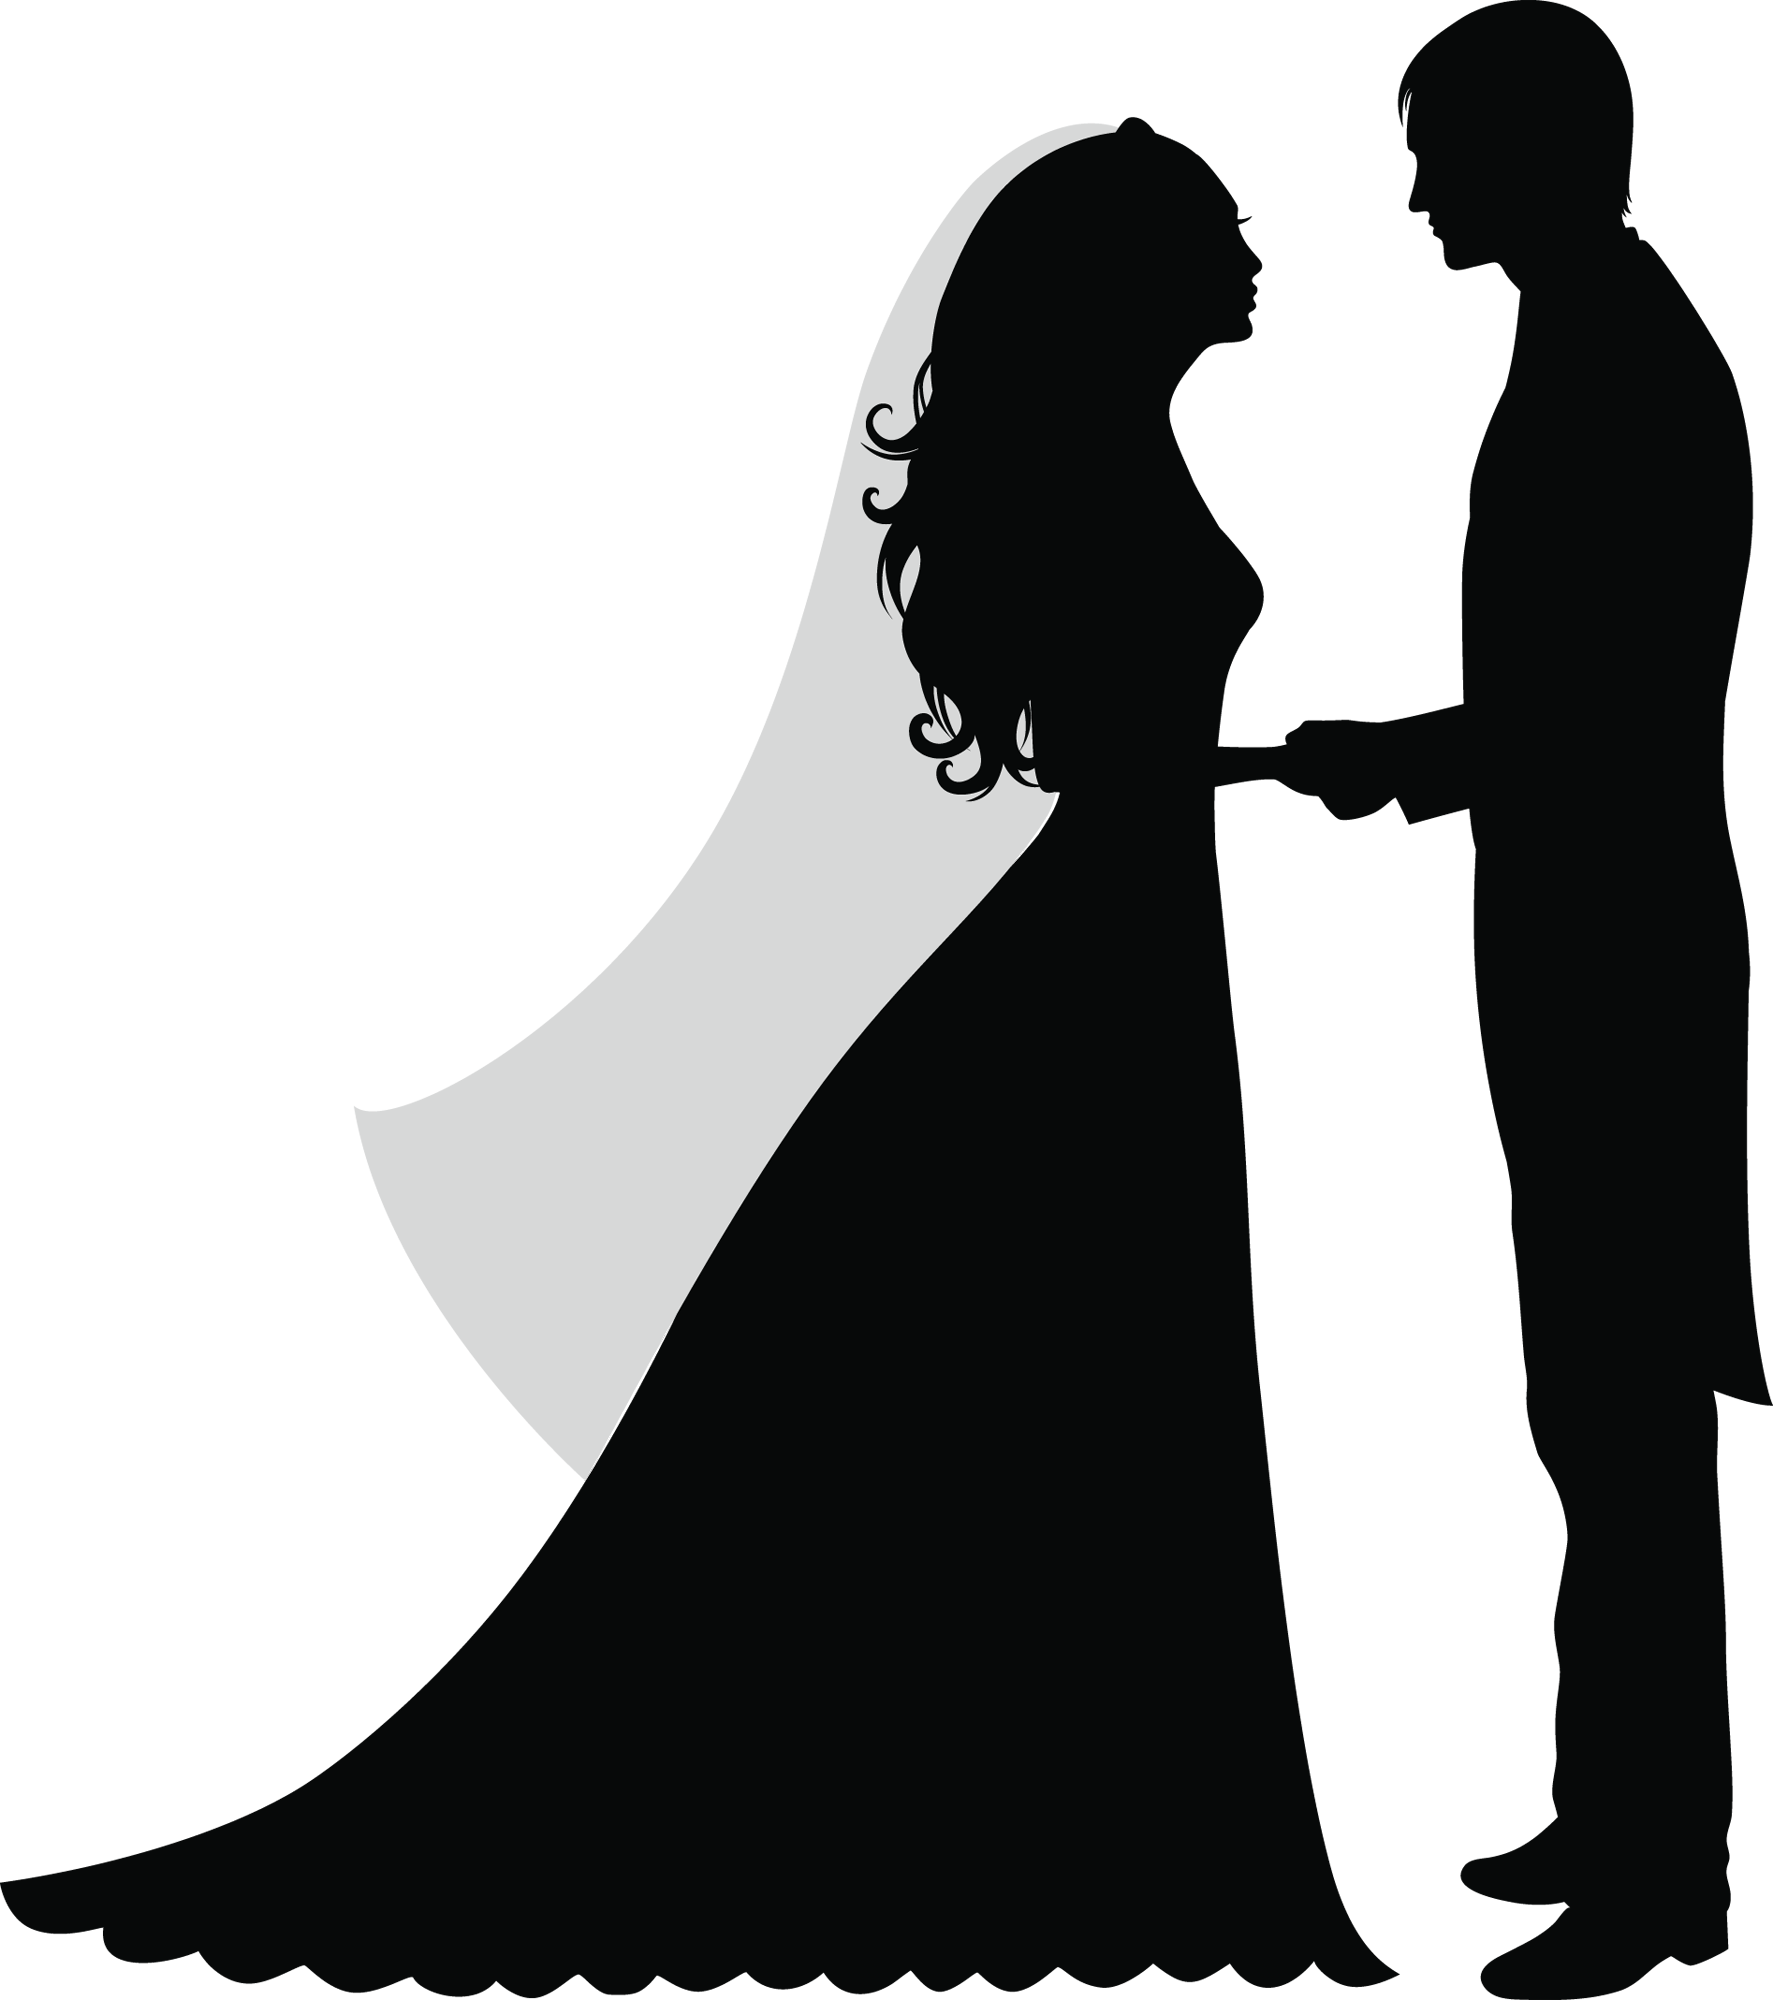 clipart transparent Groom clipart colored. Casamento silhouette pinterest stenciling